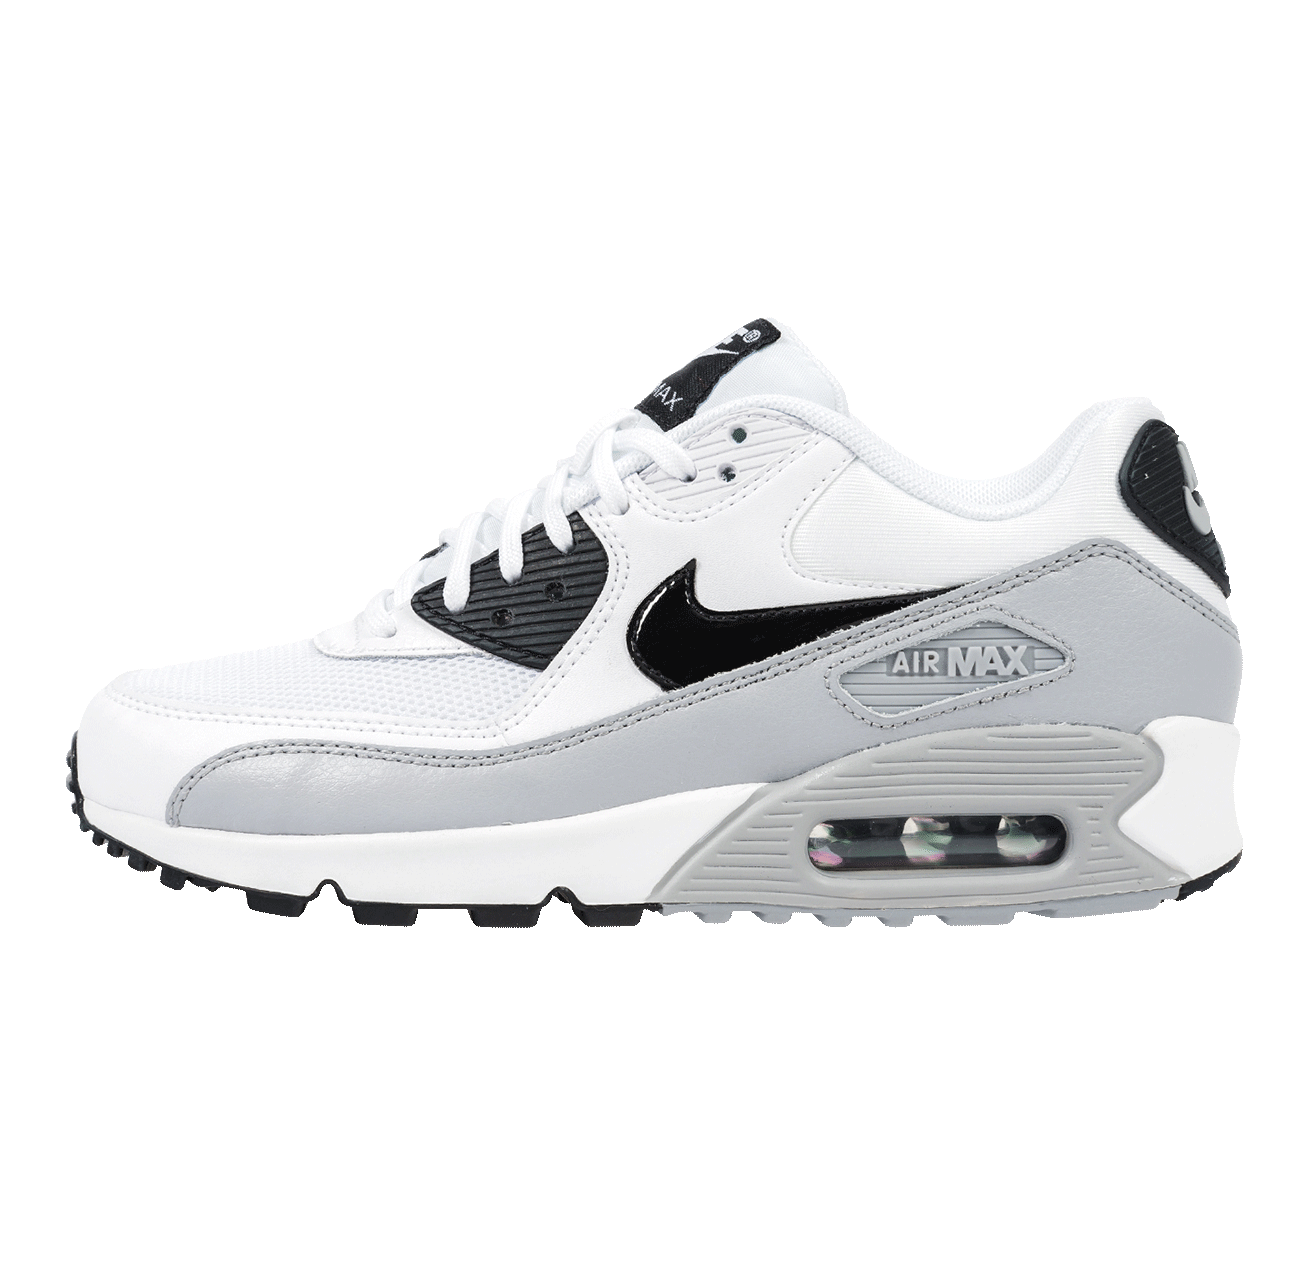 brand new 8af60 88bb2 NIKE AIR MAX 90 ESSENTIAL (WMS) - Foot Locker | Greed | Nike ...